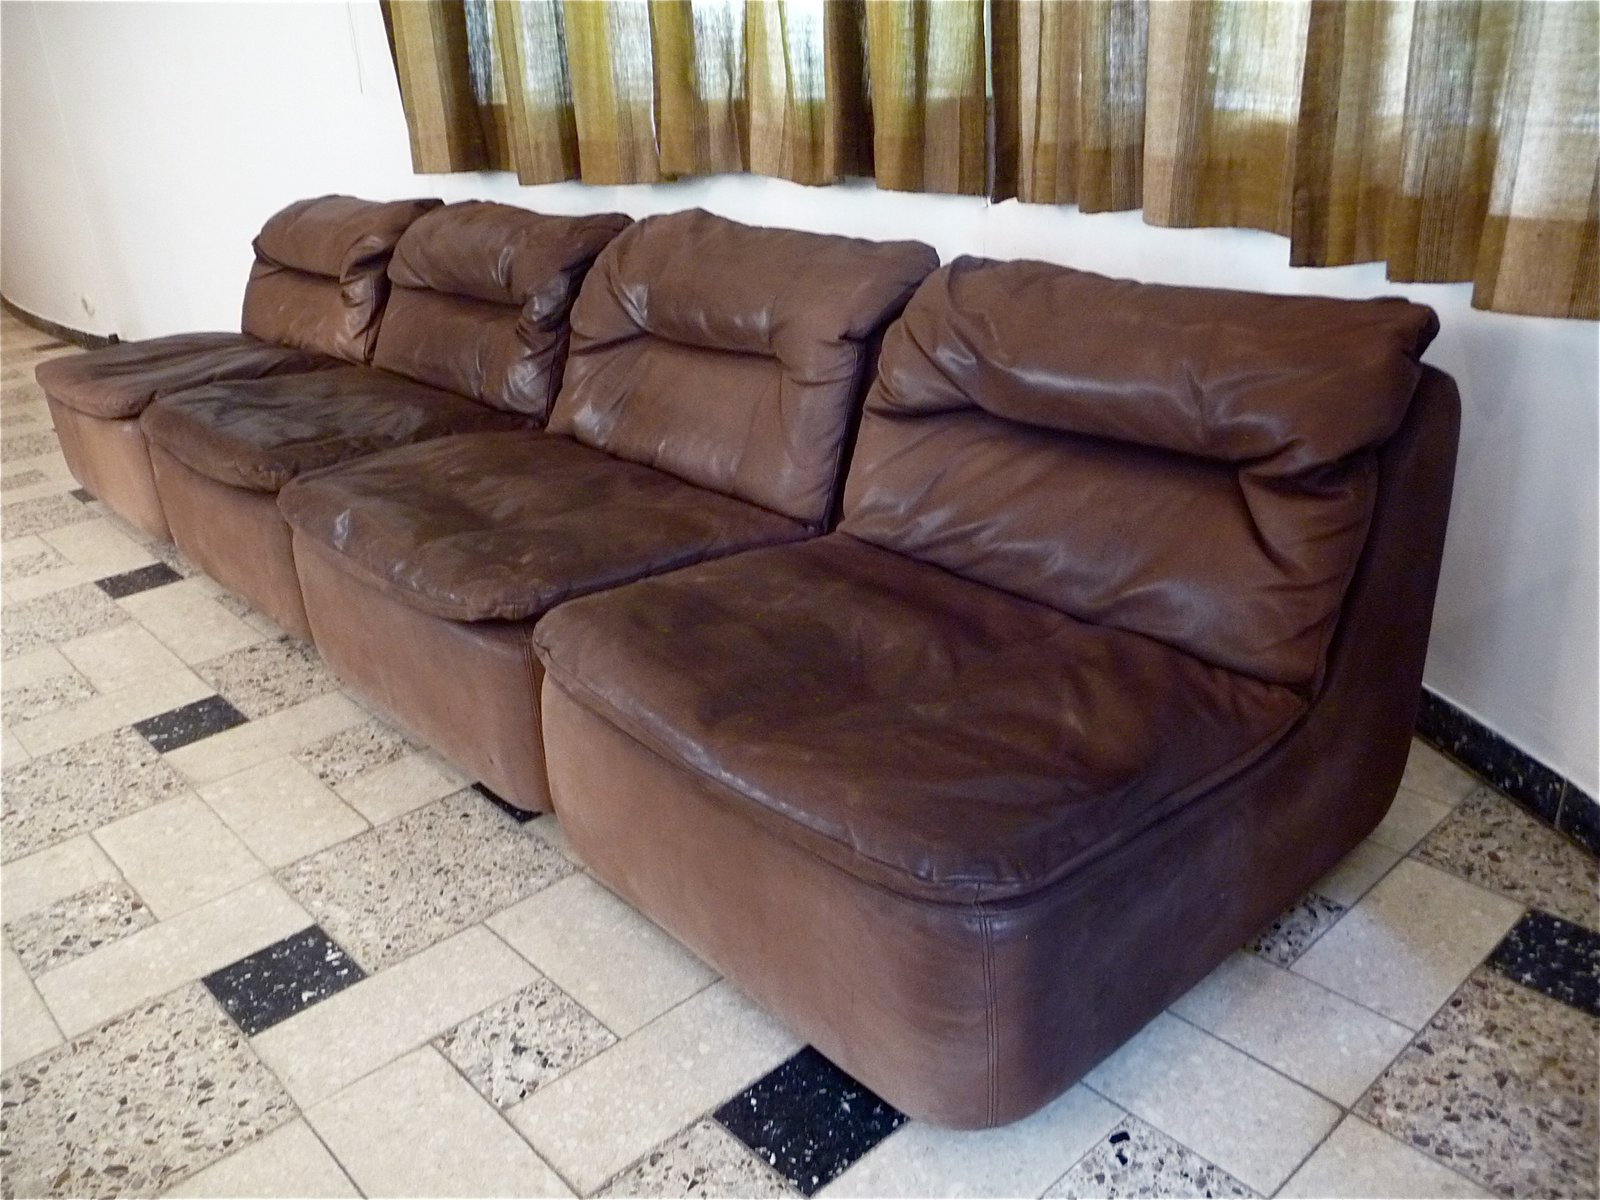 Curved Sectional Corner Leather Sofa By Friedrich Hill For Walter Knoll 1970s For Sale At Pamono